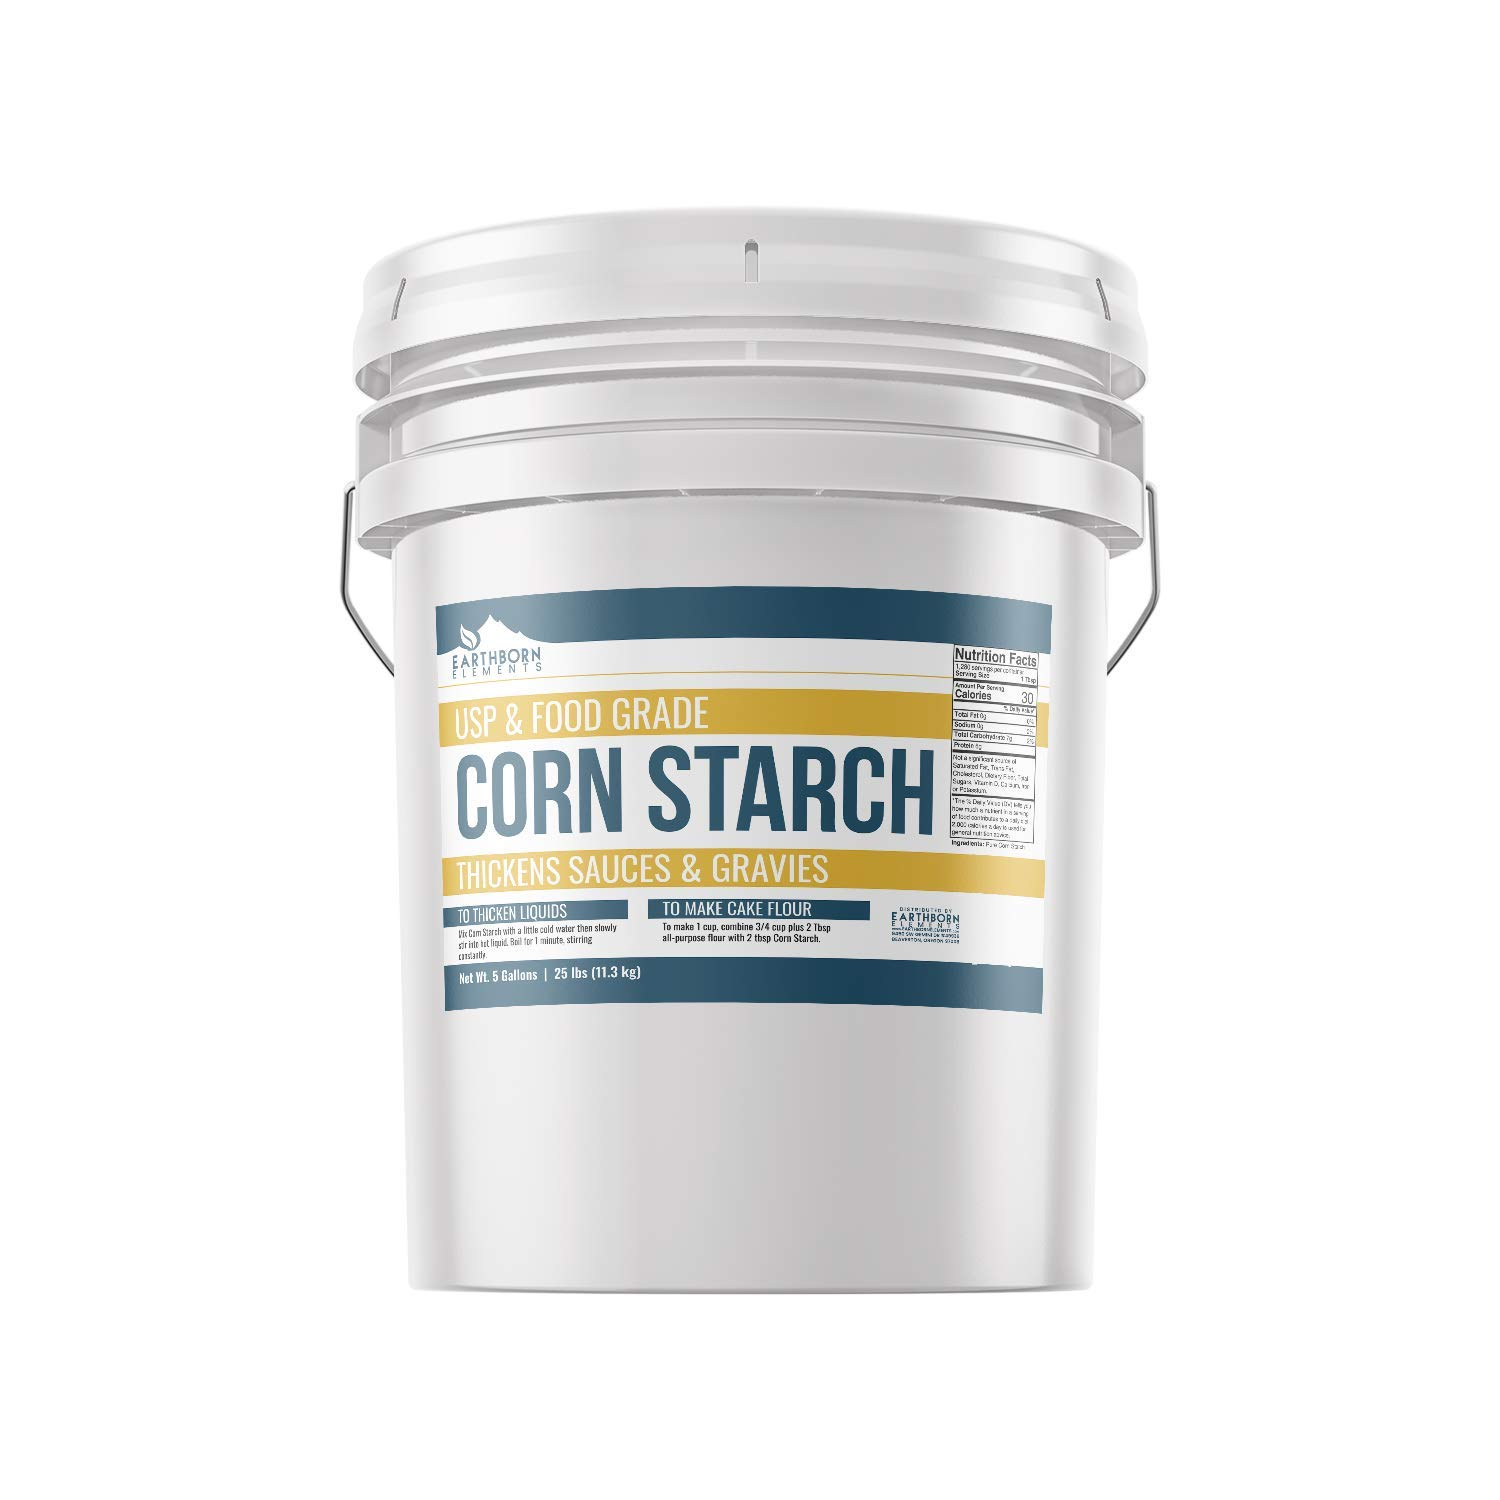 Corn Starch (5 Gallon (25 lb.)) by Earthborn Elements, Resealable Bucket, Thickener For Sauces, Soup, & Gravy, Highest Quality, All-Natural, Kosher, Food Grade & USP Grade, Vegan, Gluten-Free by Earthborn Elements